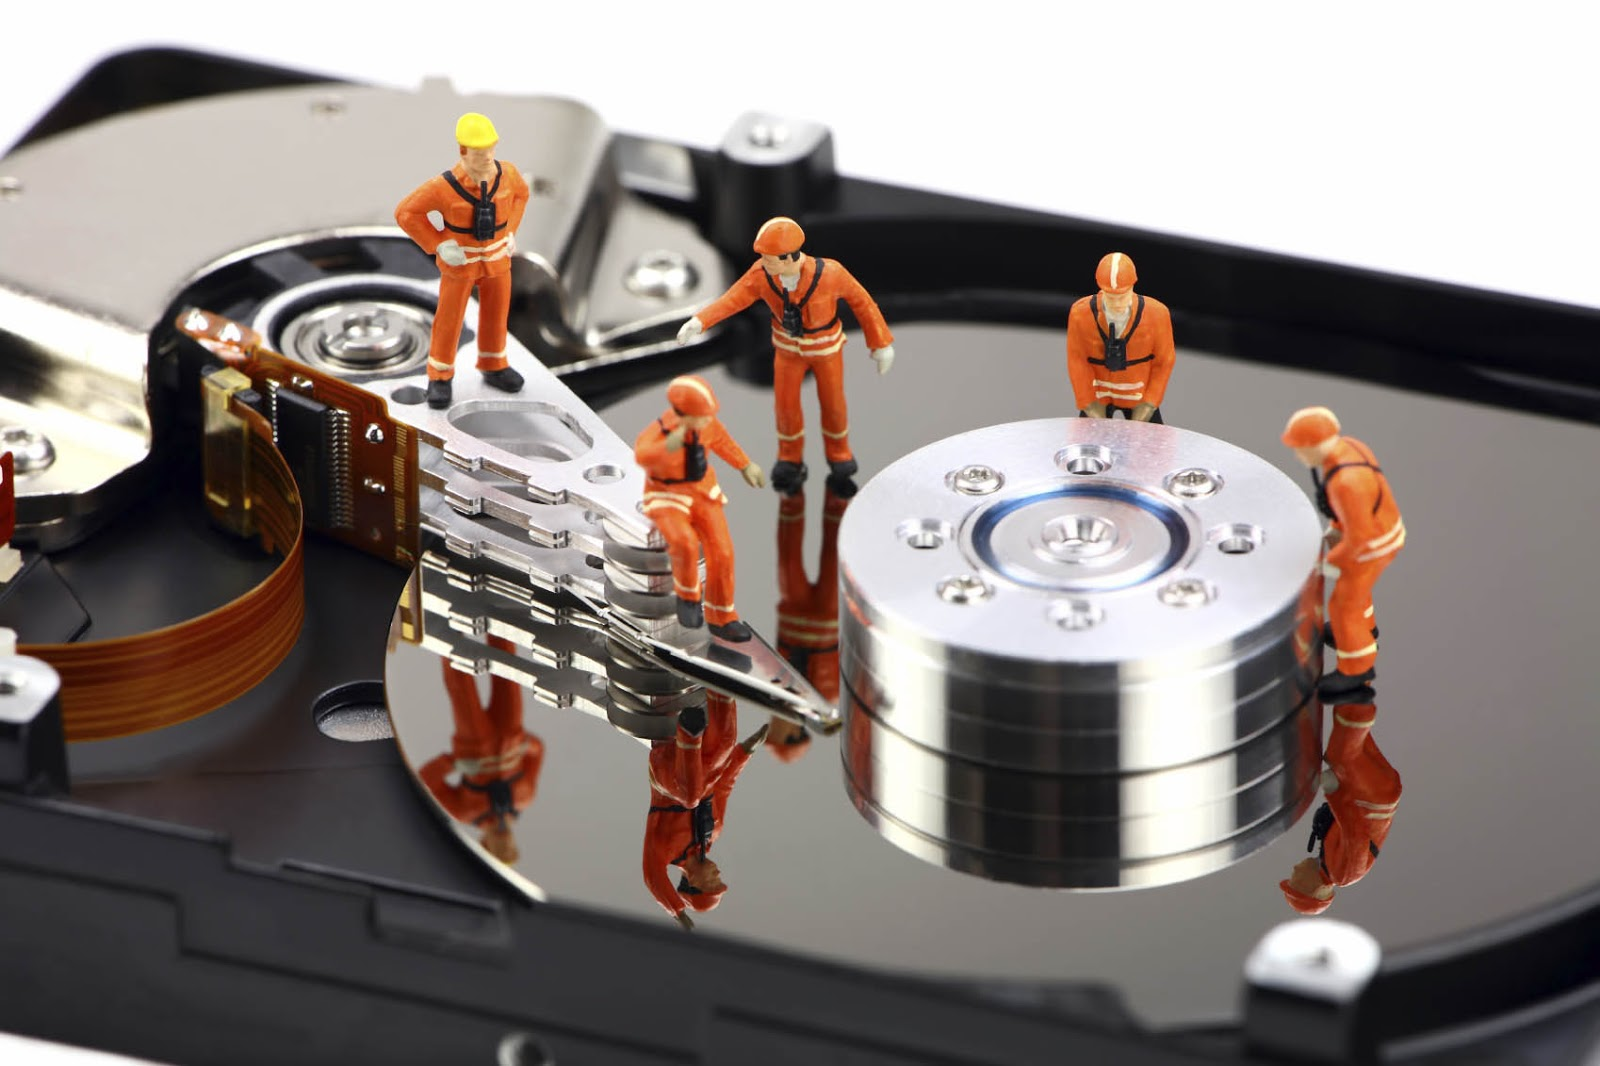 Top 10 Best Free Data Recovery Software to Recover Deleted Files